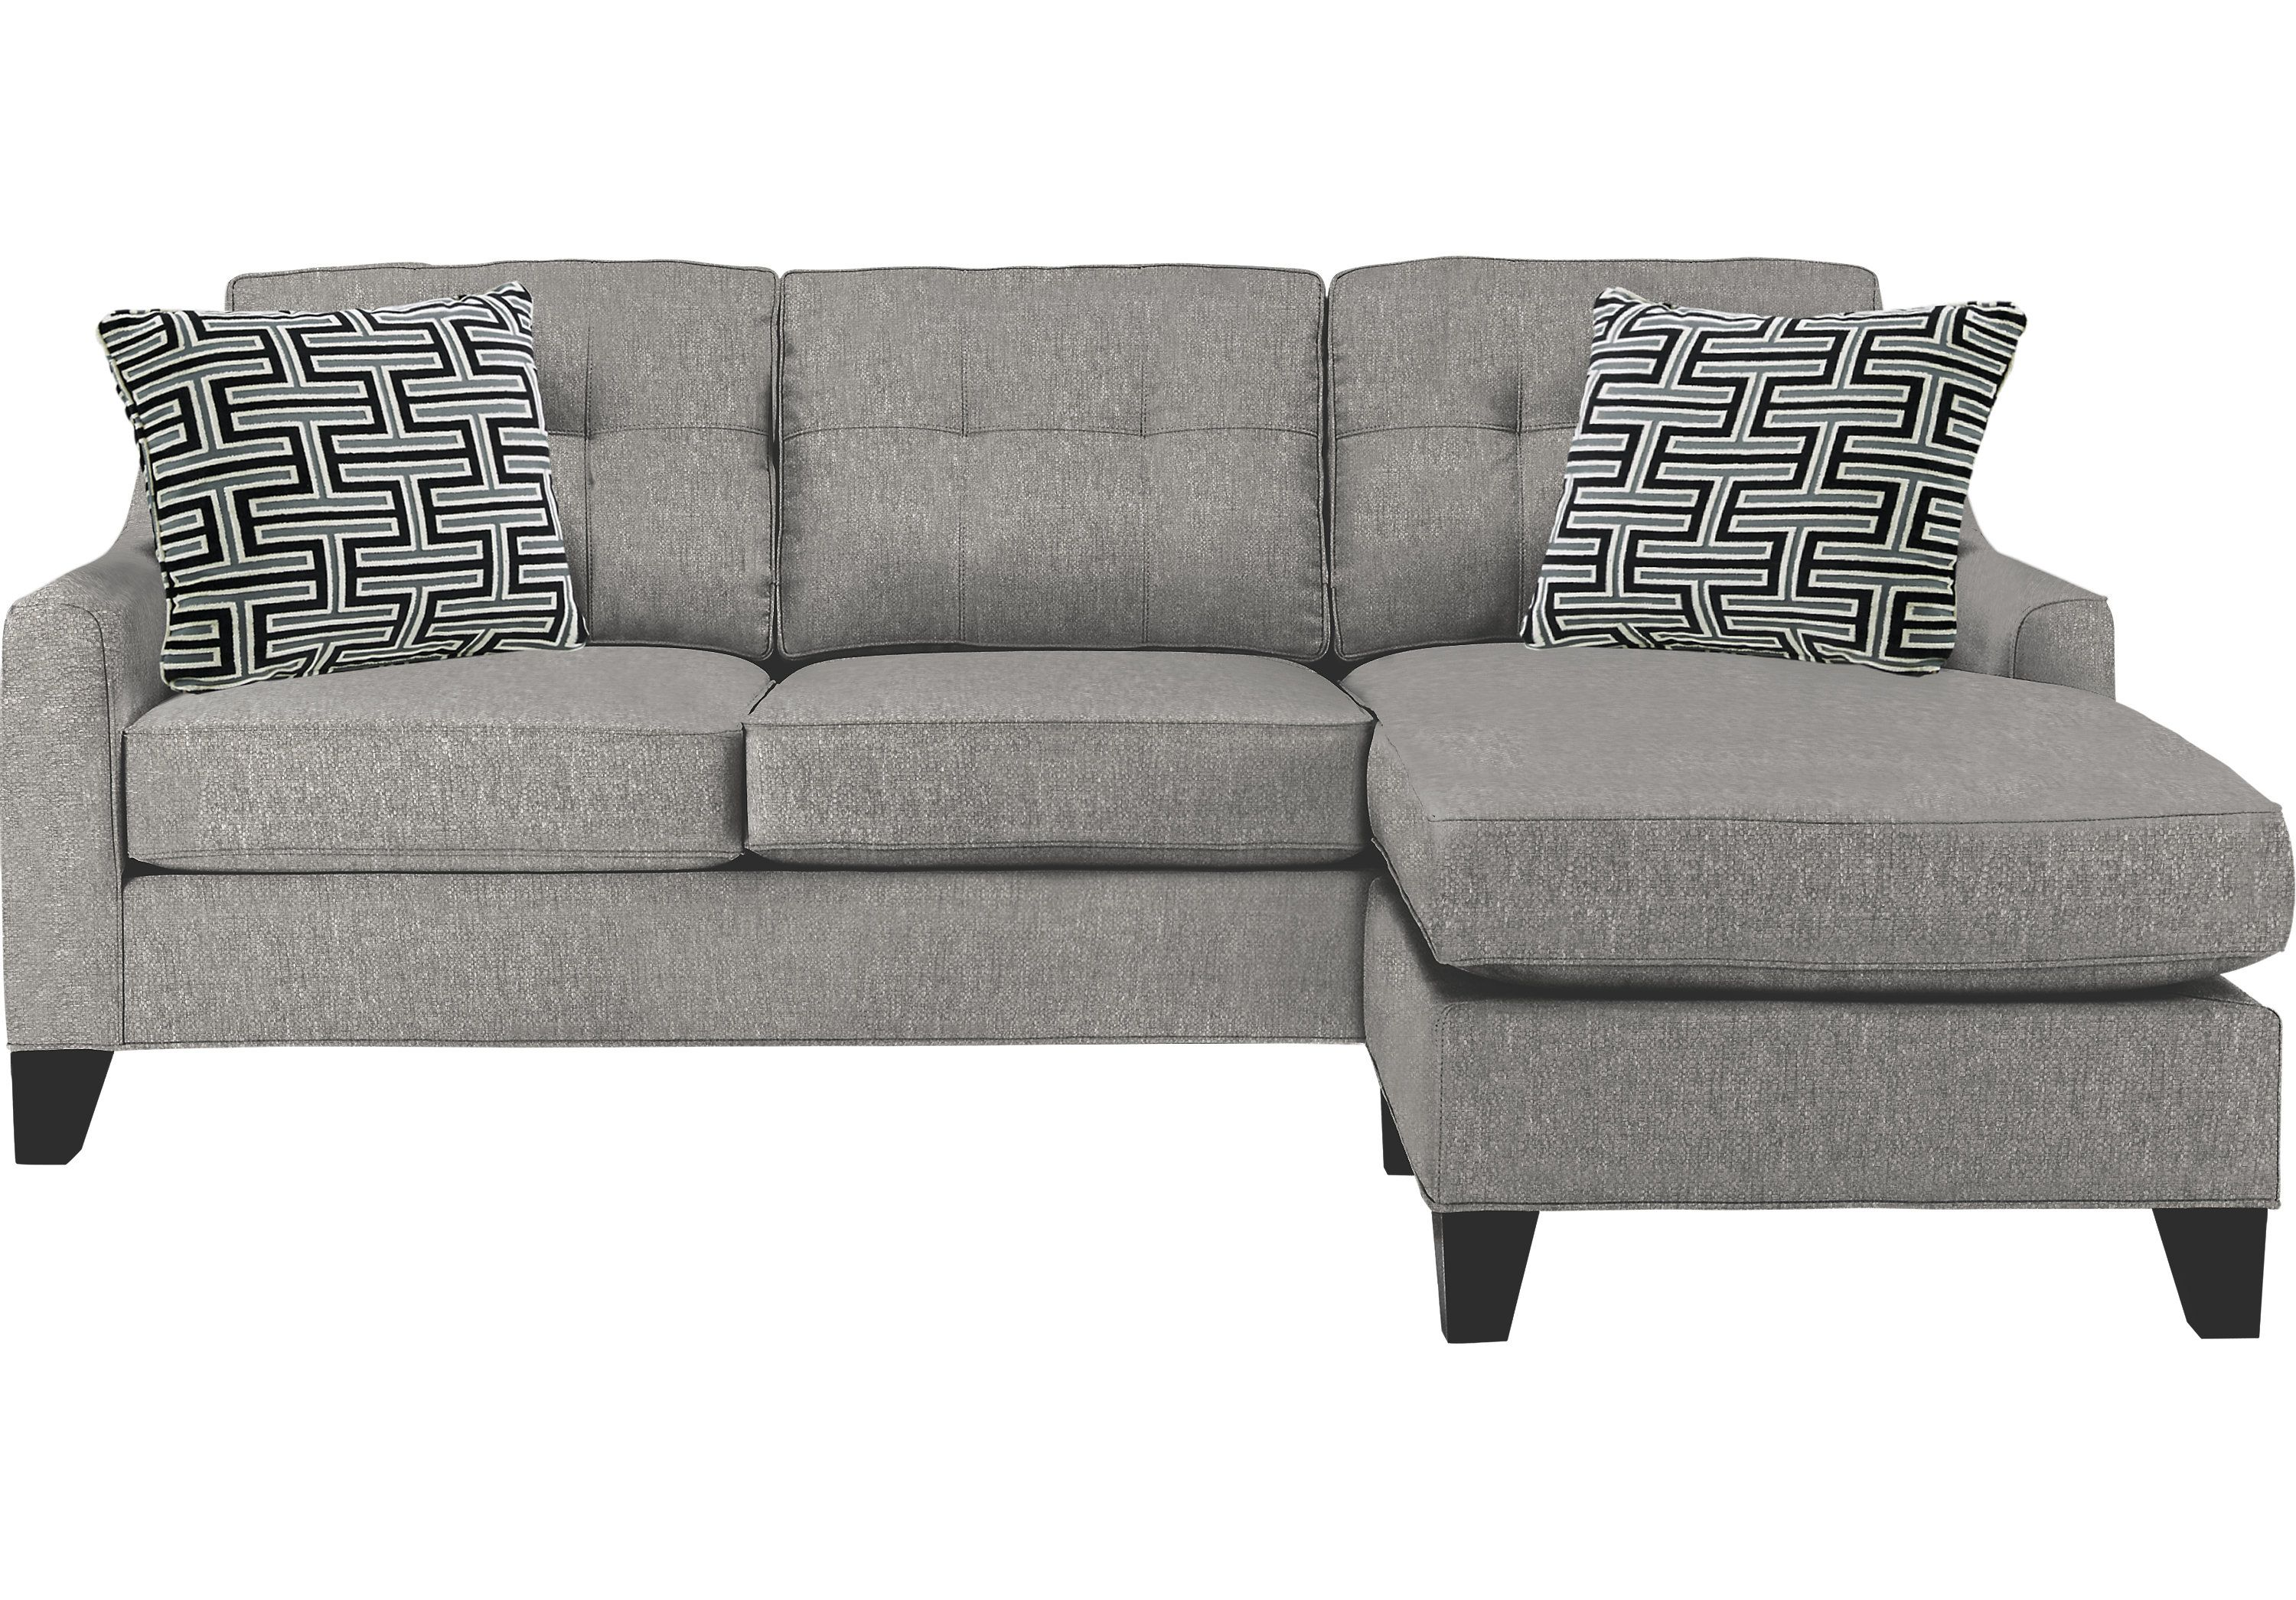 Fine Madison Place Gray Sectional Isofa Furniture Grey Unemploymentrelief Wooden Chair Designs For Living Room Unemploymentrelieforg